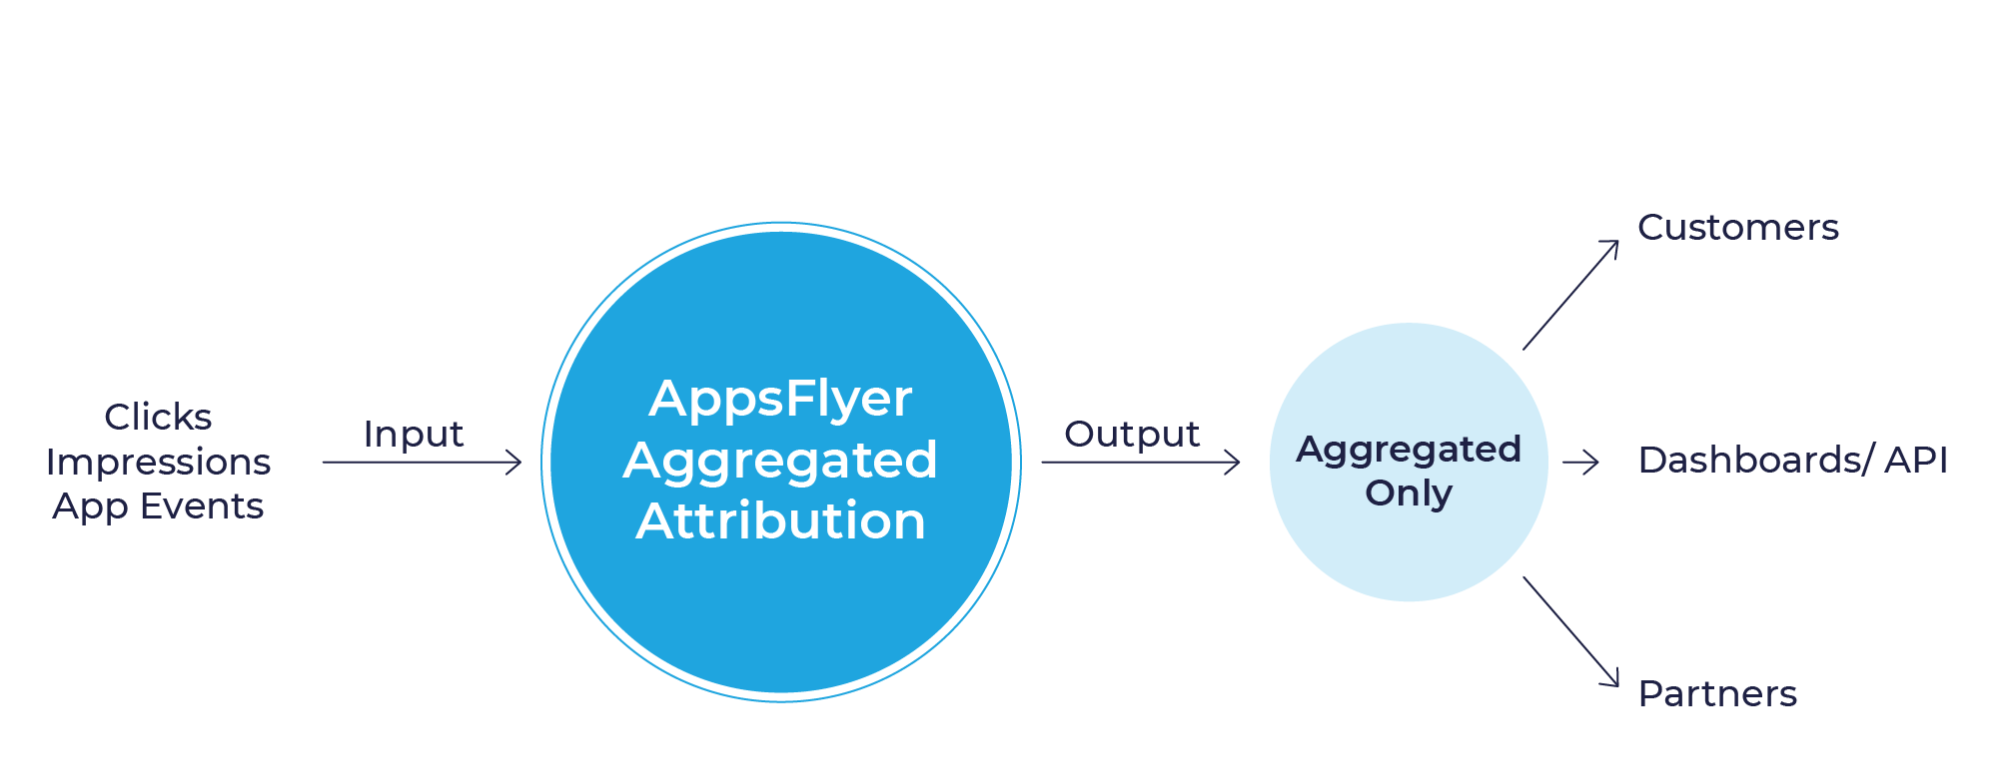 AppsFlyer's Aggregated Attribution Solution